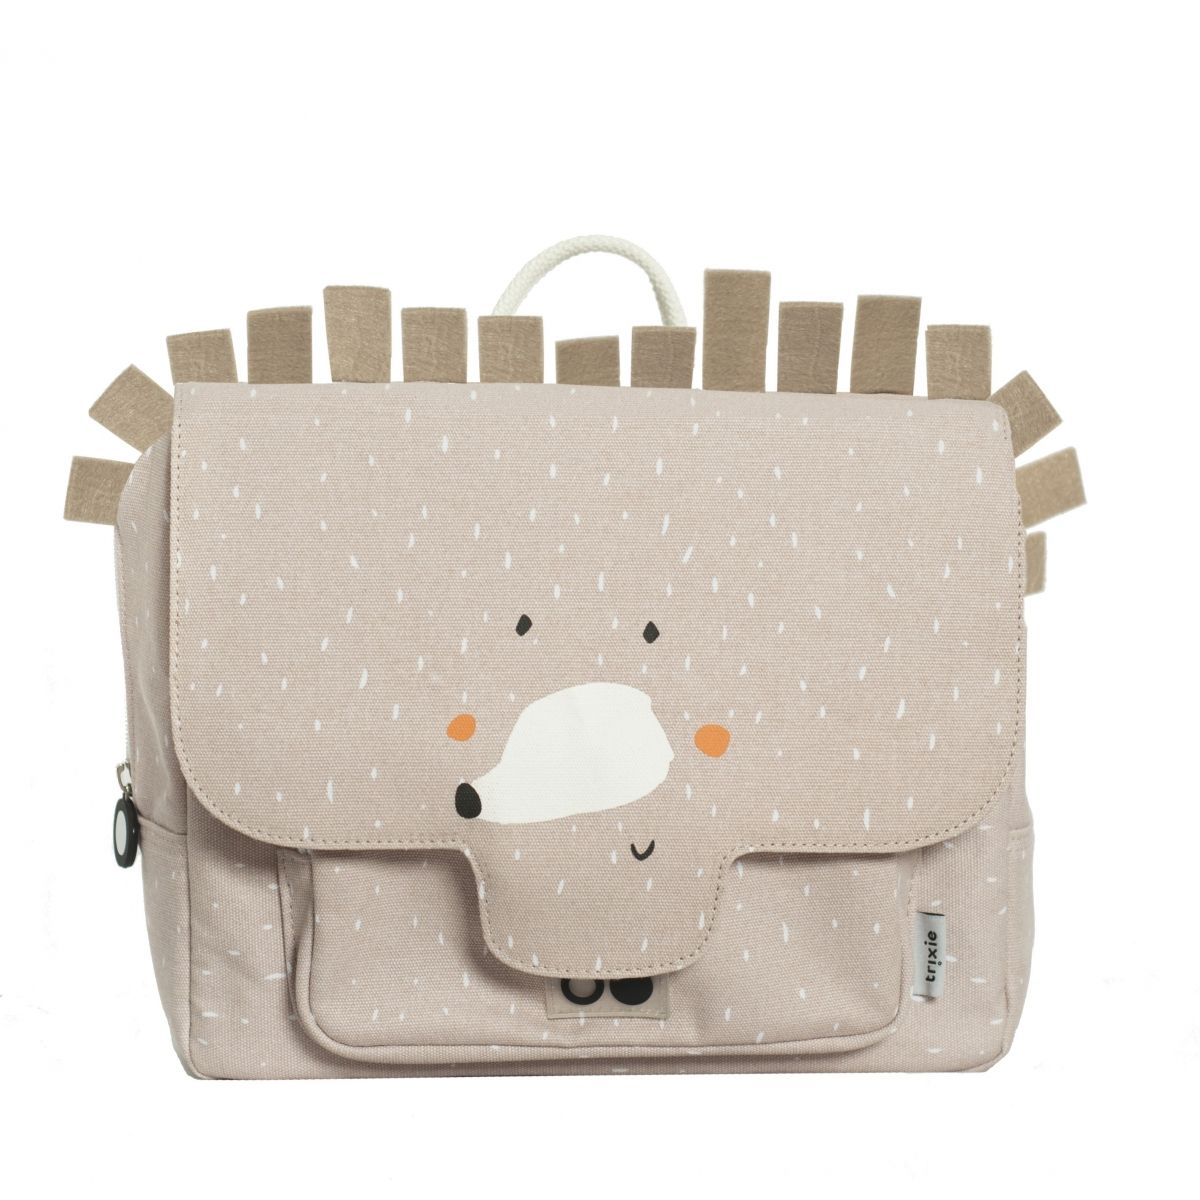 Trixie - Mme cartable Hérisson beige - 1